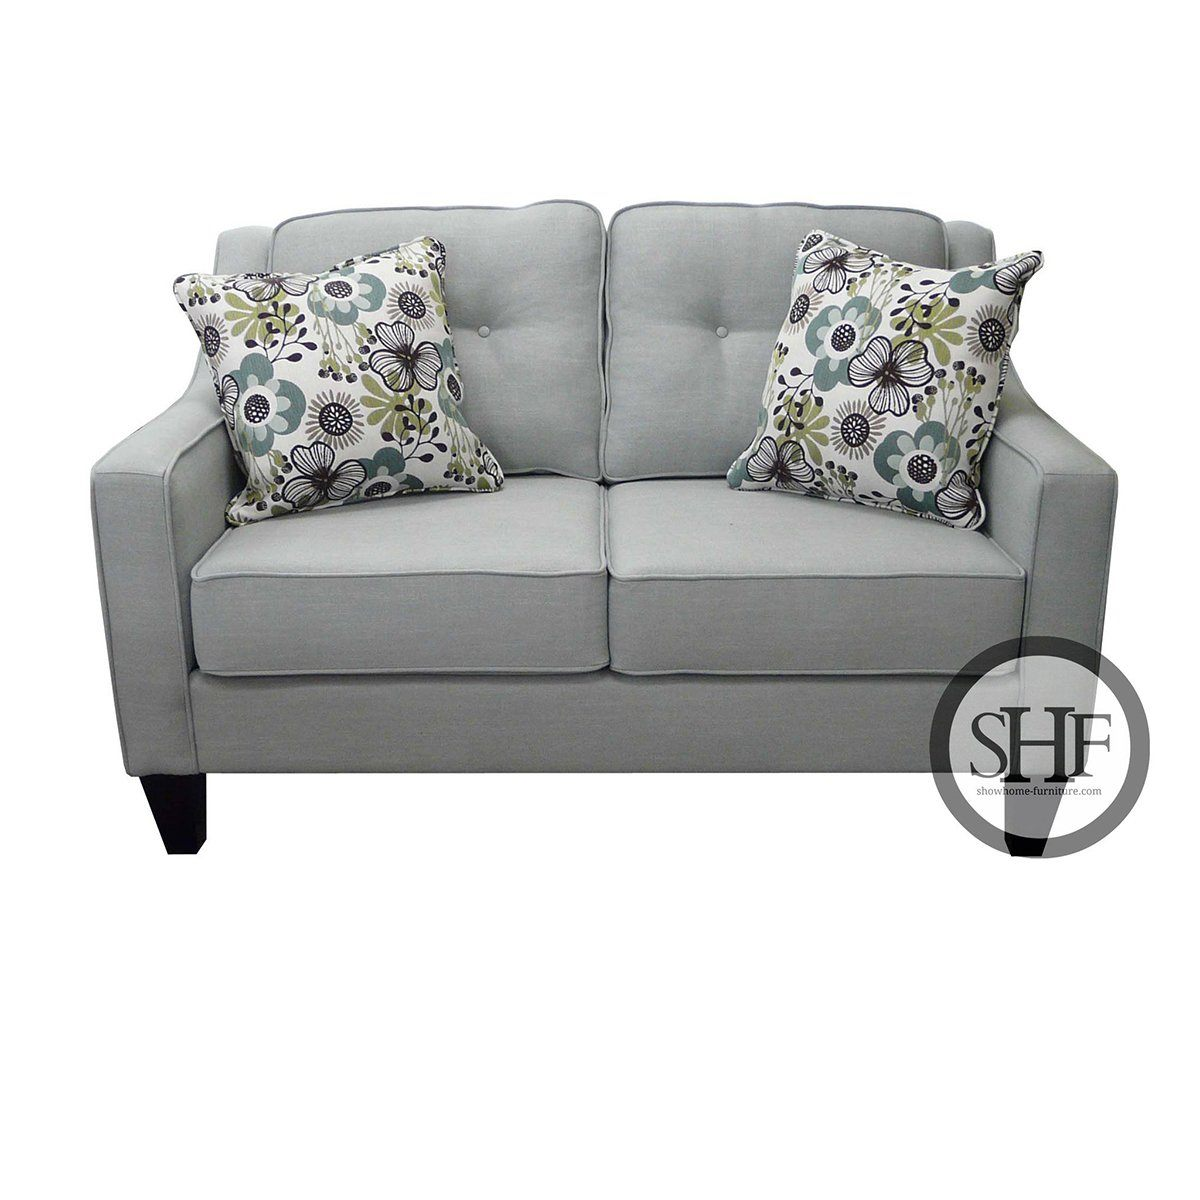 Custom Hilton Loveseat - Made in Canada - Showhome Furniture